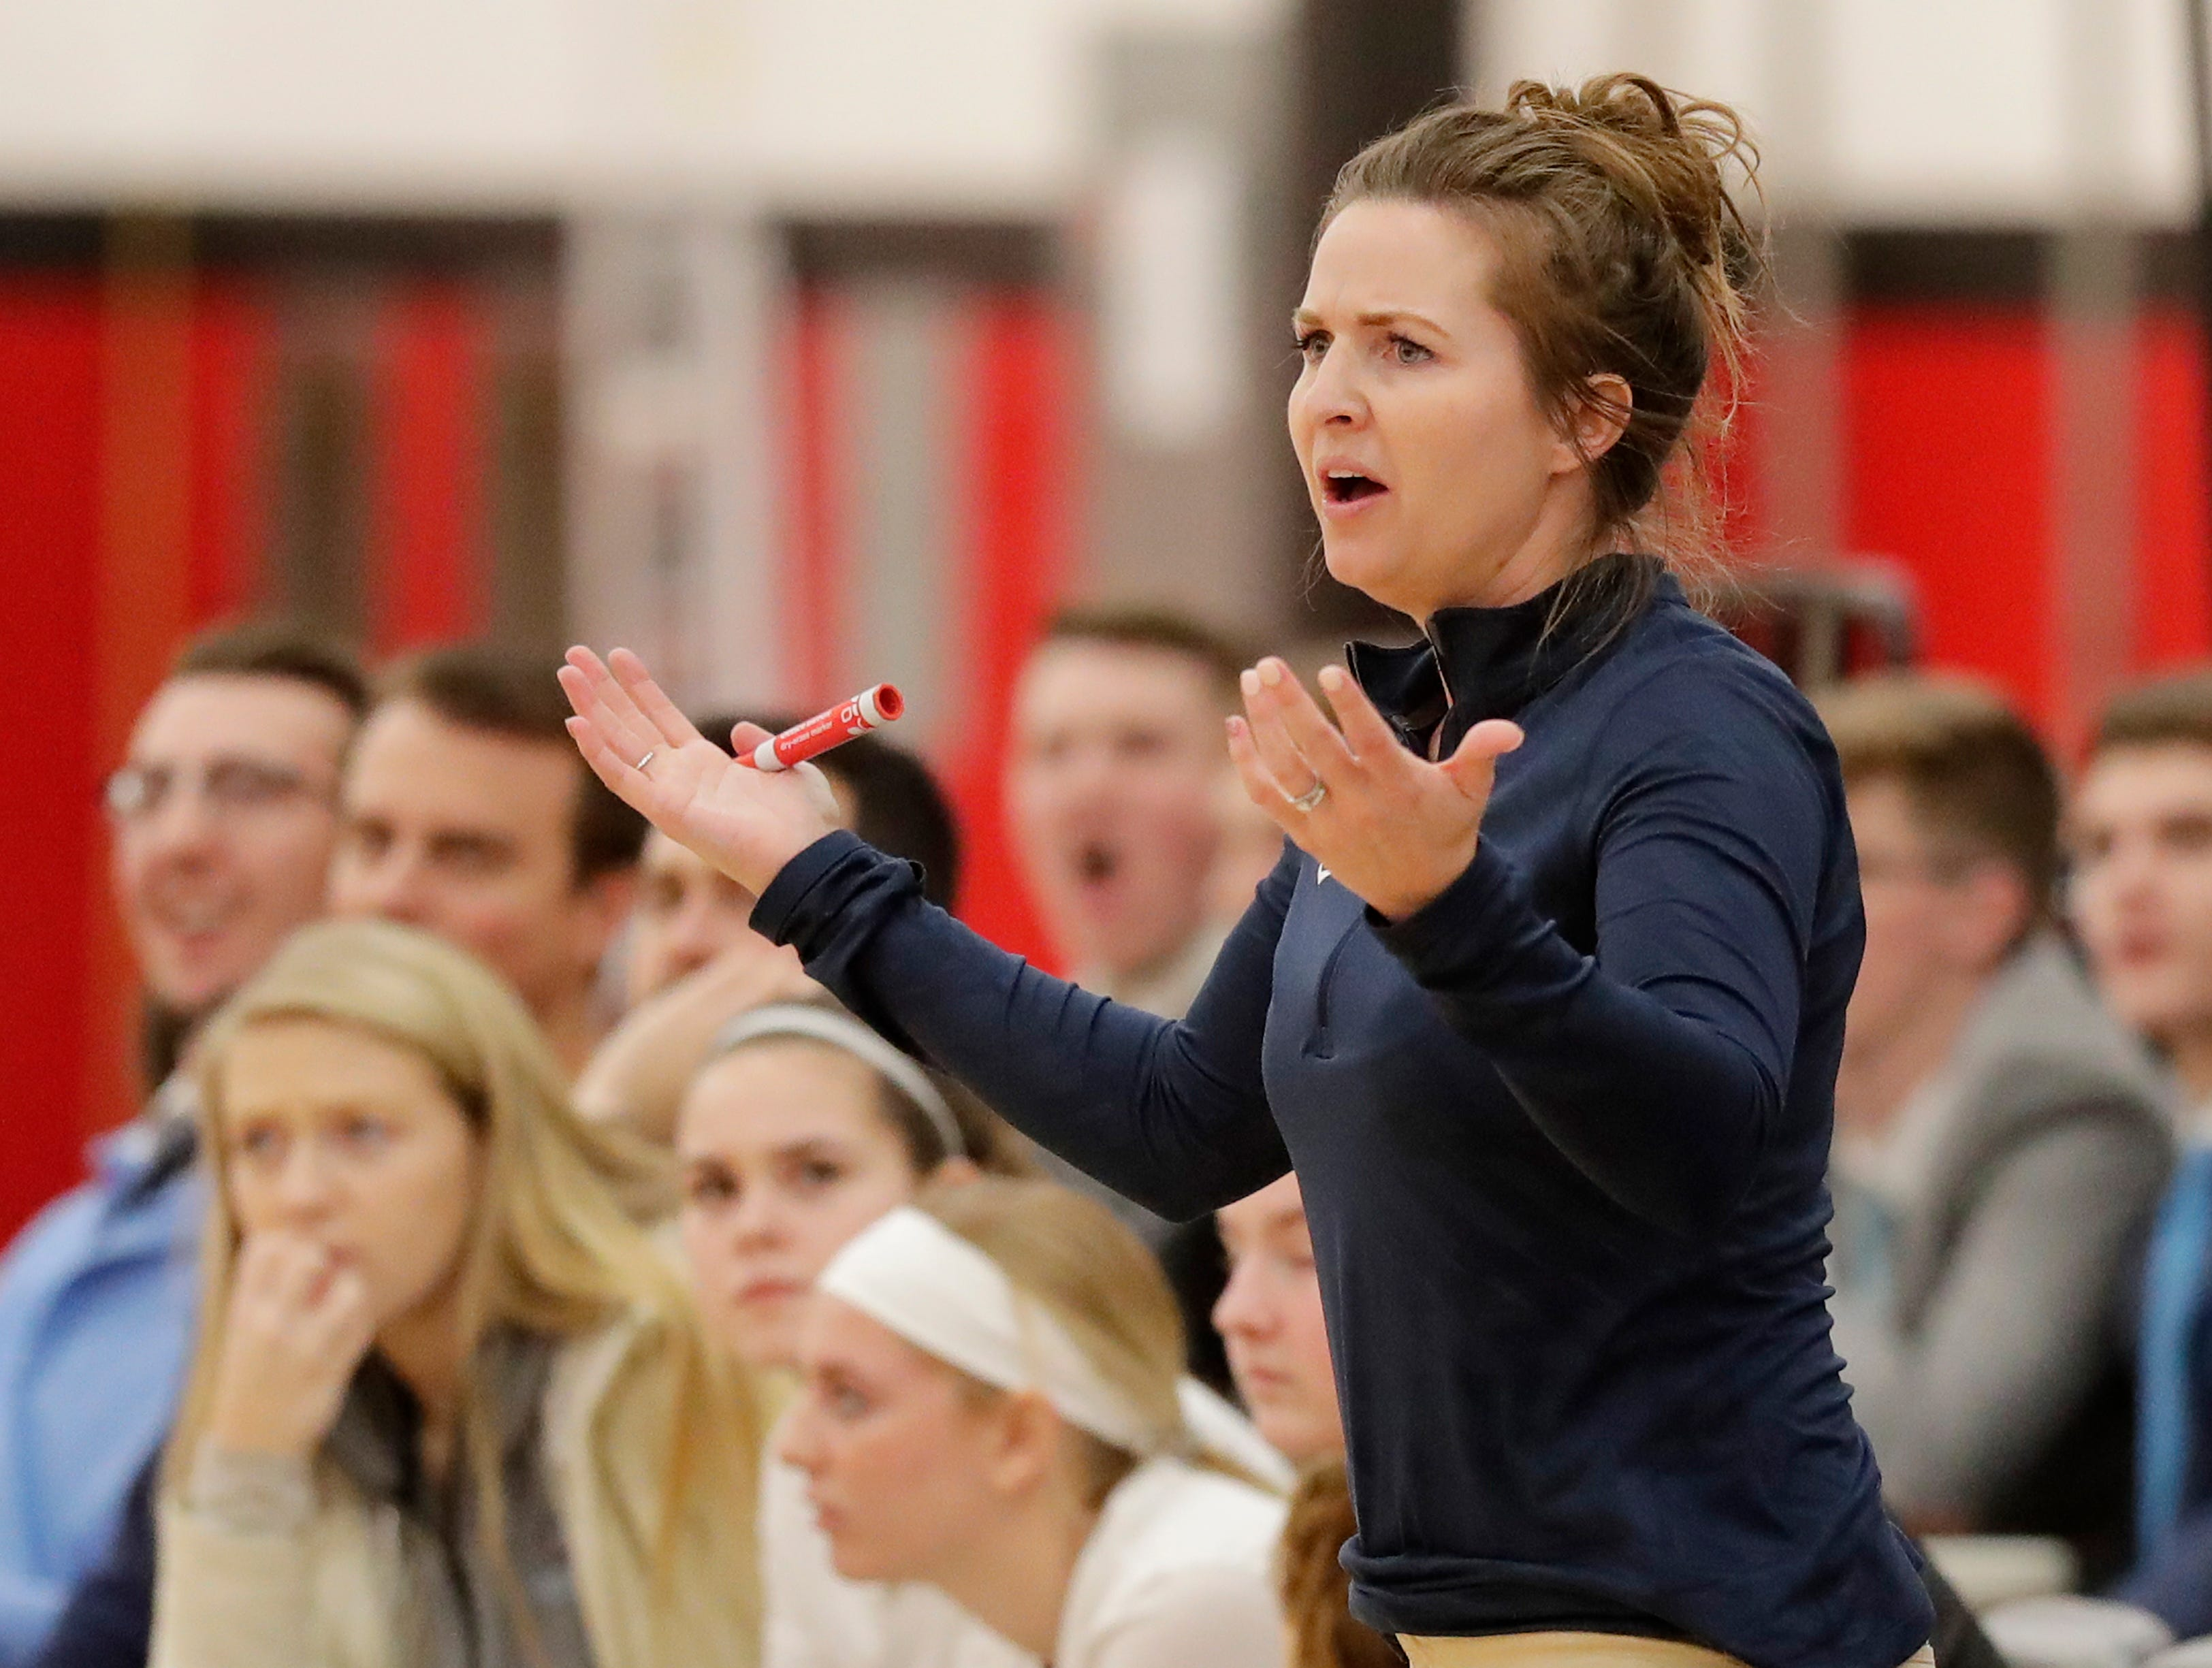 Bay Port head coach Kati Coleman reacts during a girls basketball game at Pulaski high school on Friday, January 4, 2019 in Pulaski, Wis.